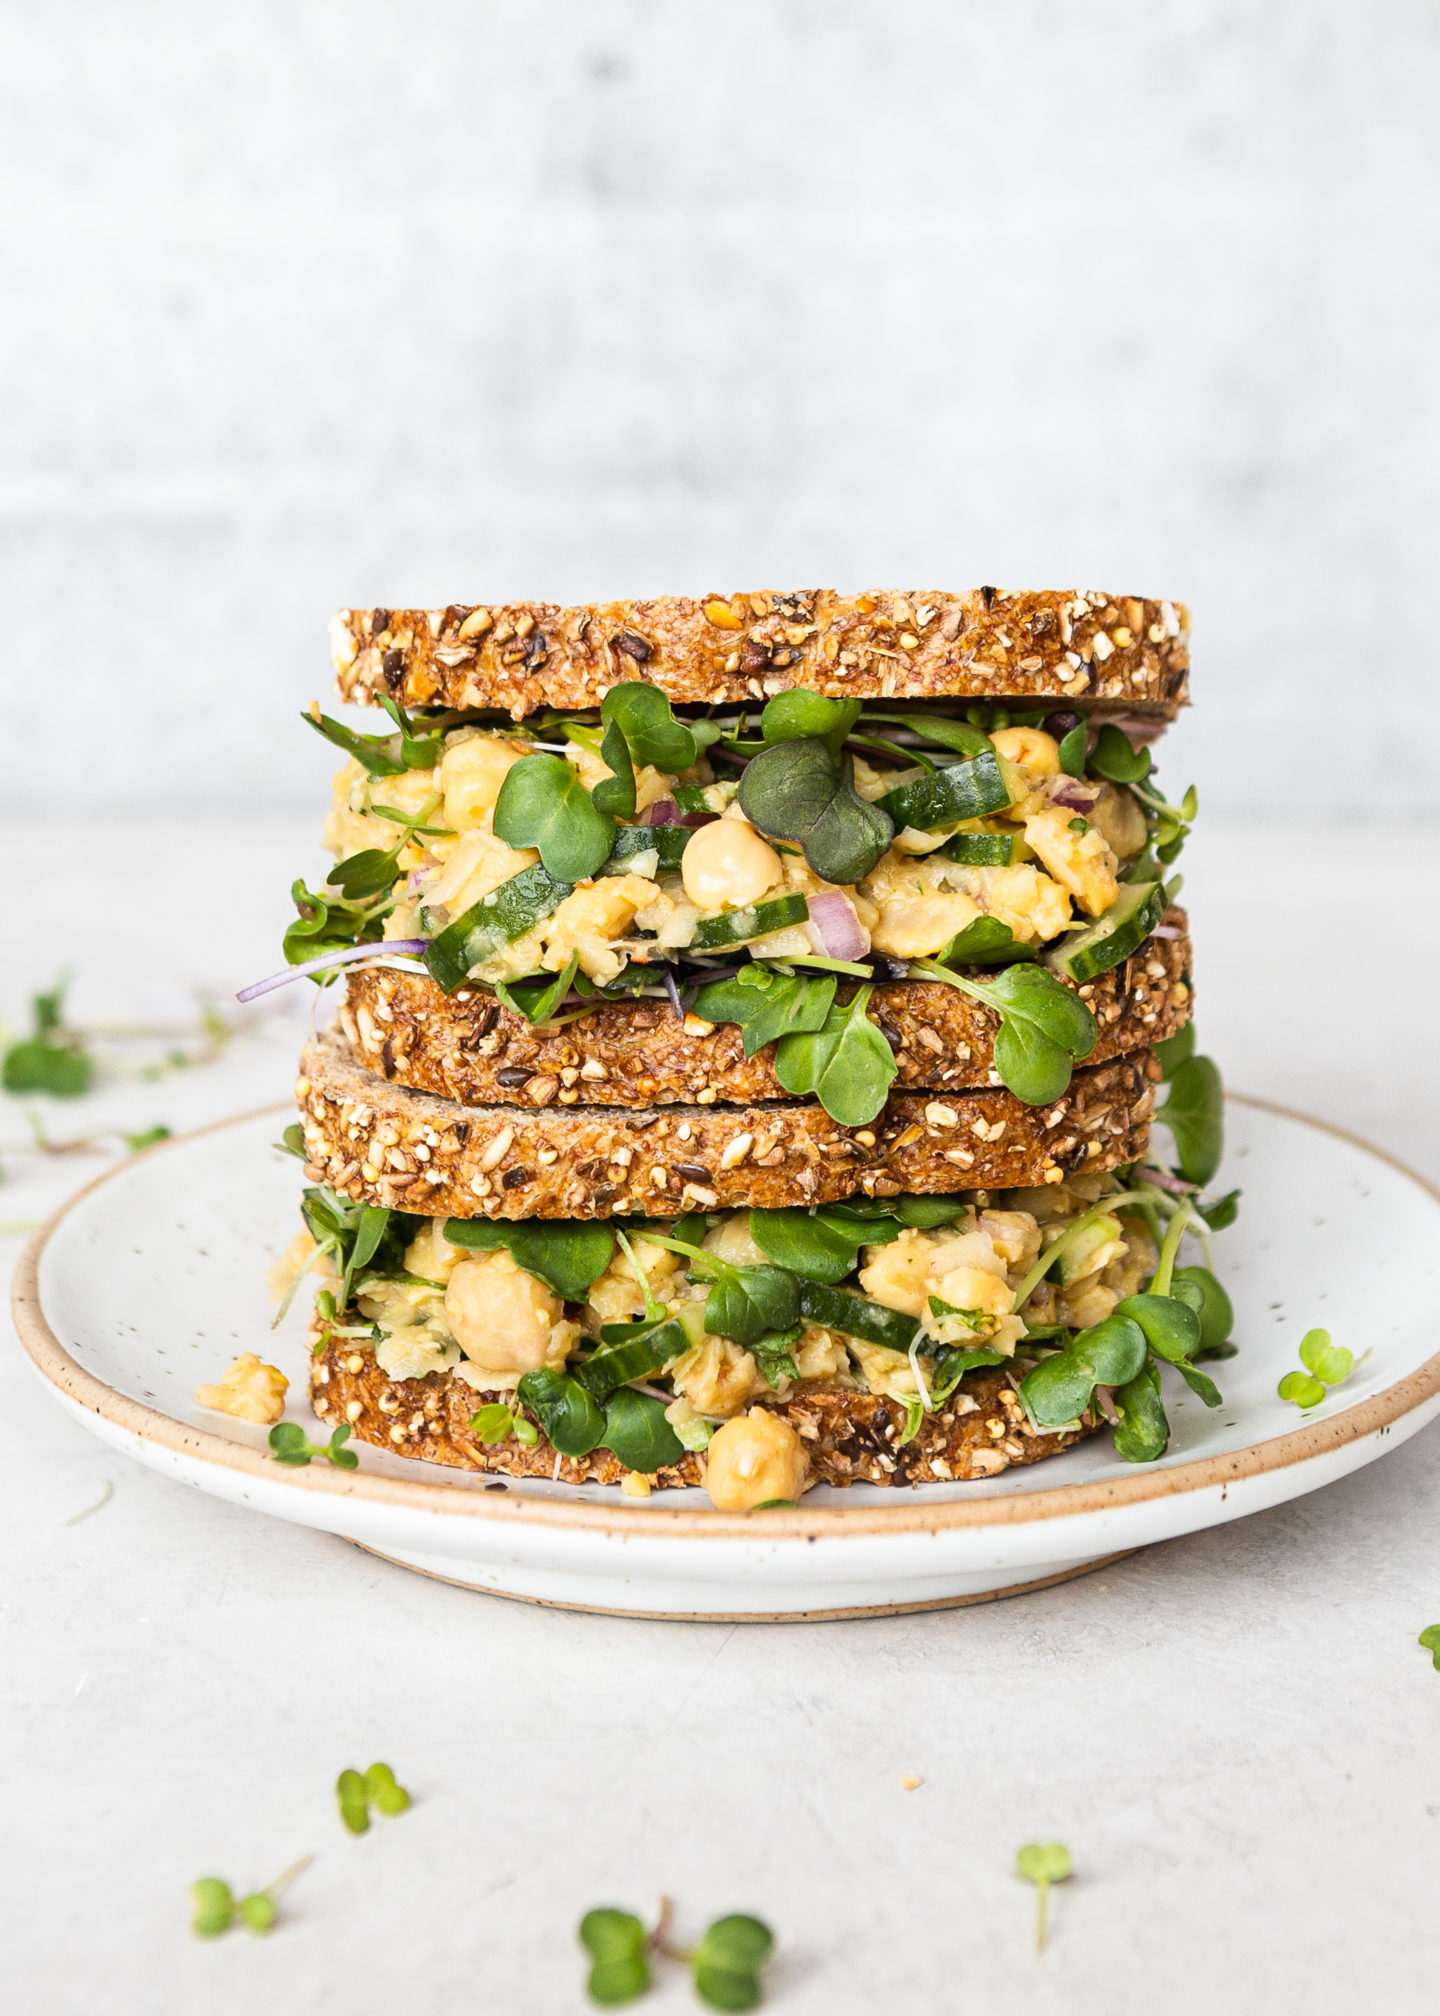 Summer Chickpea Smash Sandwich